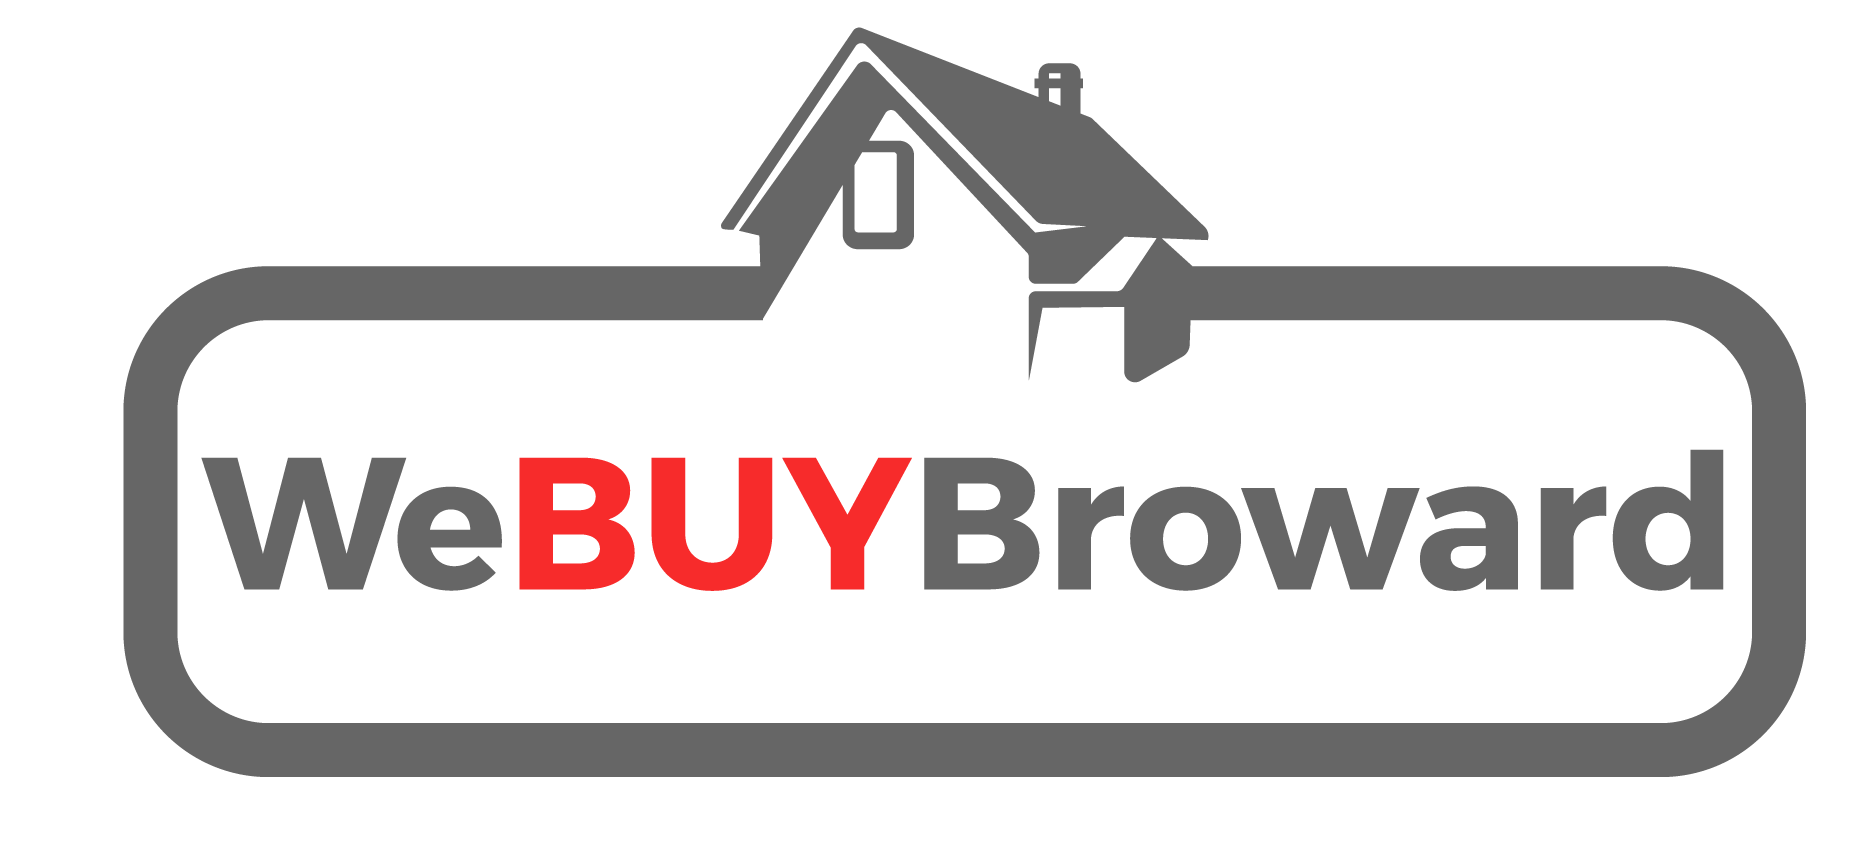 Lighthouse Point Home, No Problem for We Buy Broward - We Buy Broward